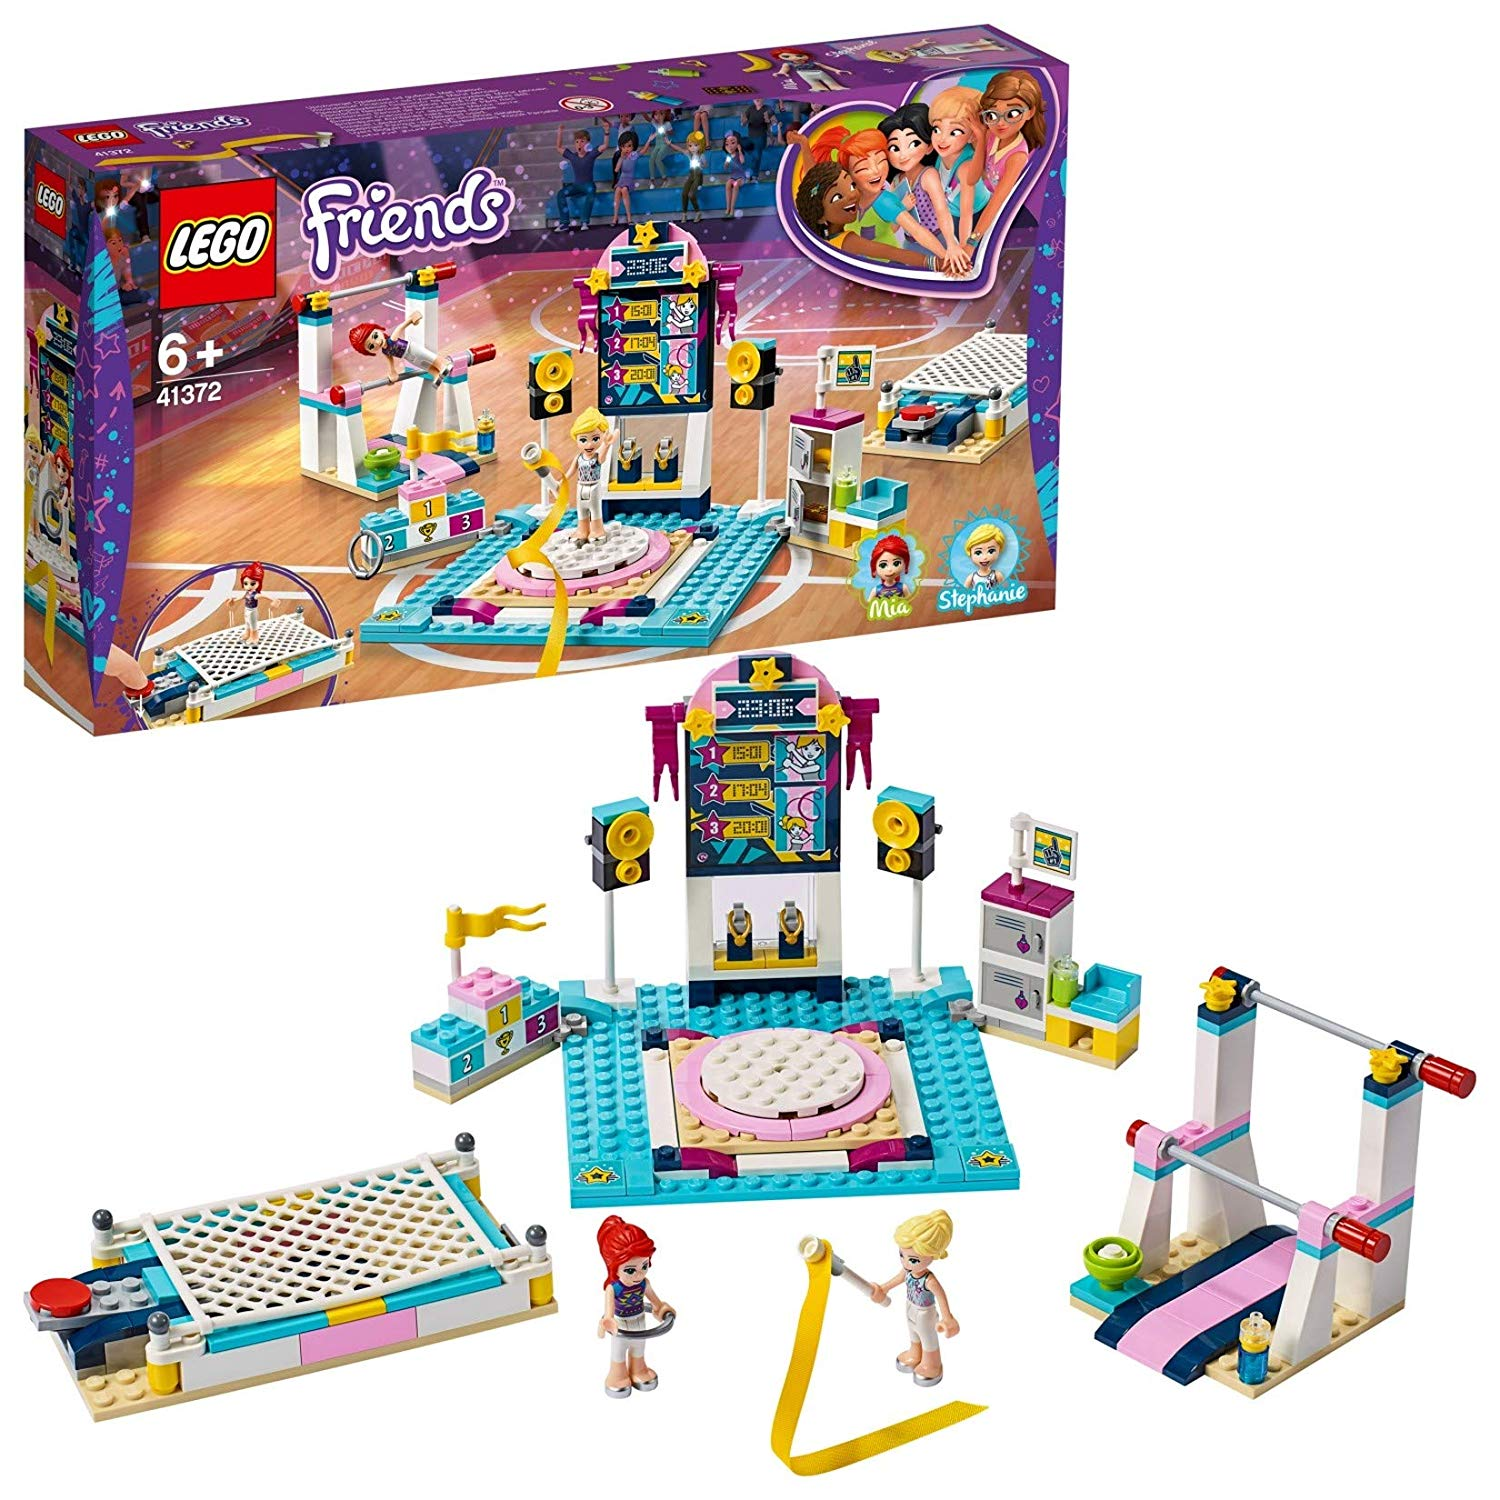 LEGO 41762 Friends Stephanie's Gymnastics Show Playset